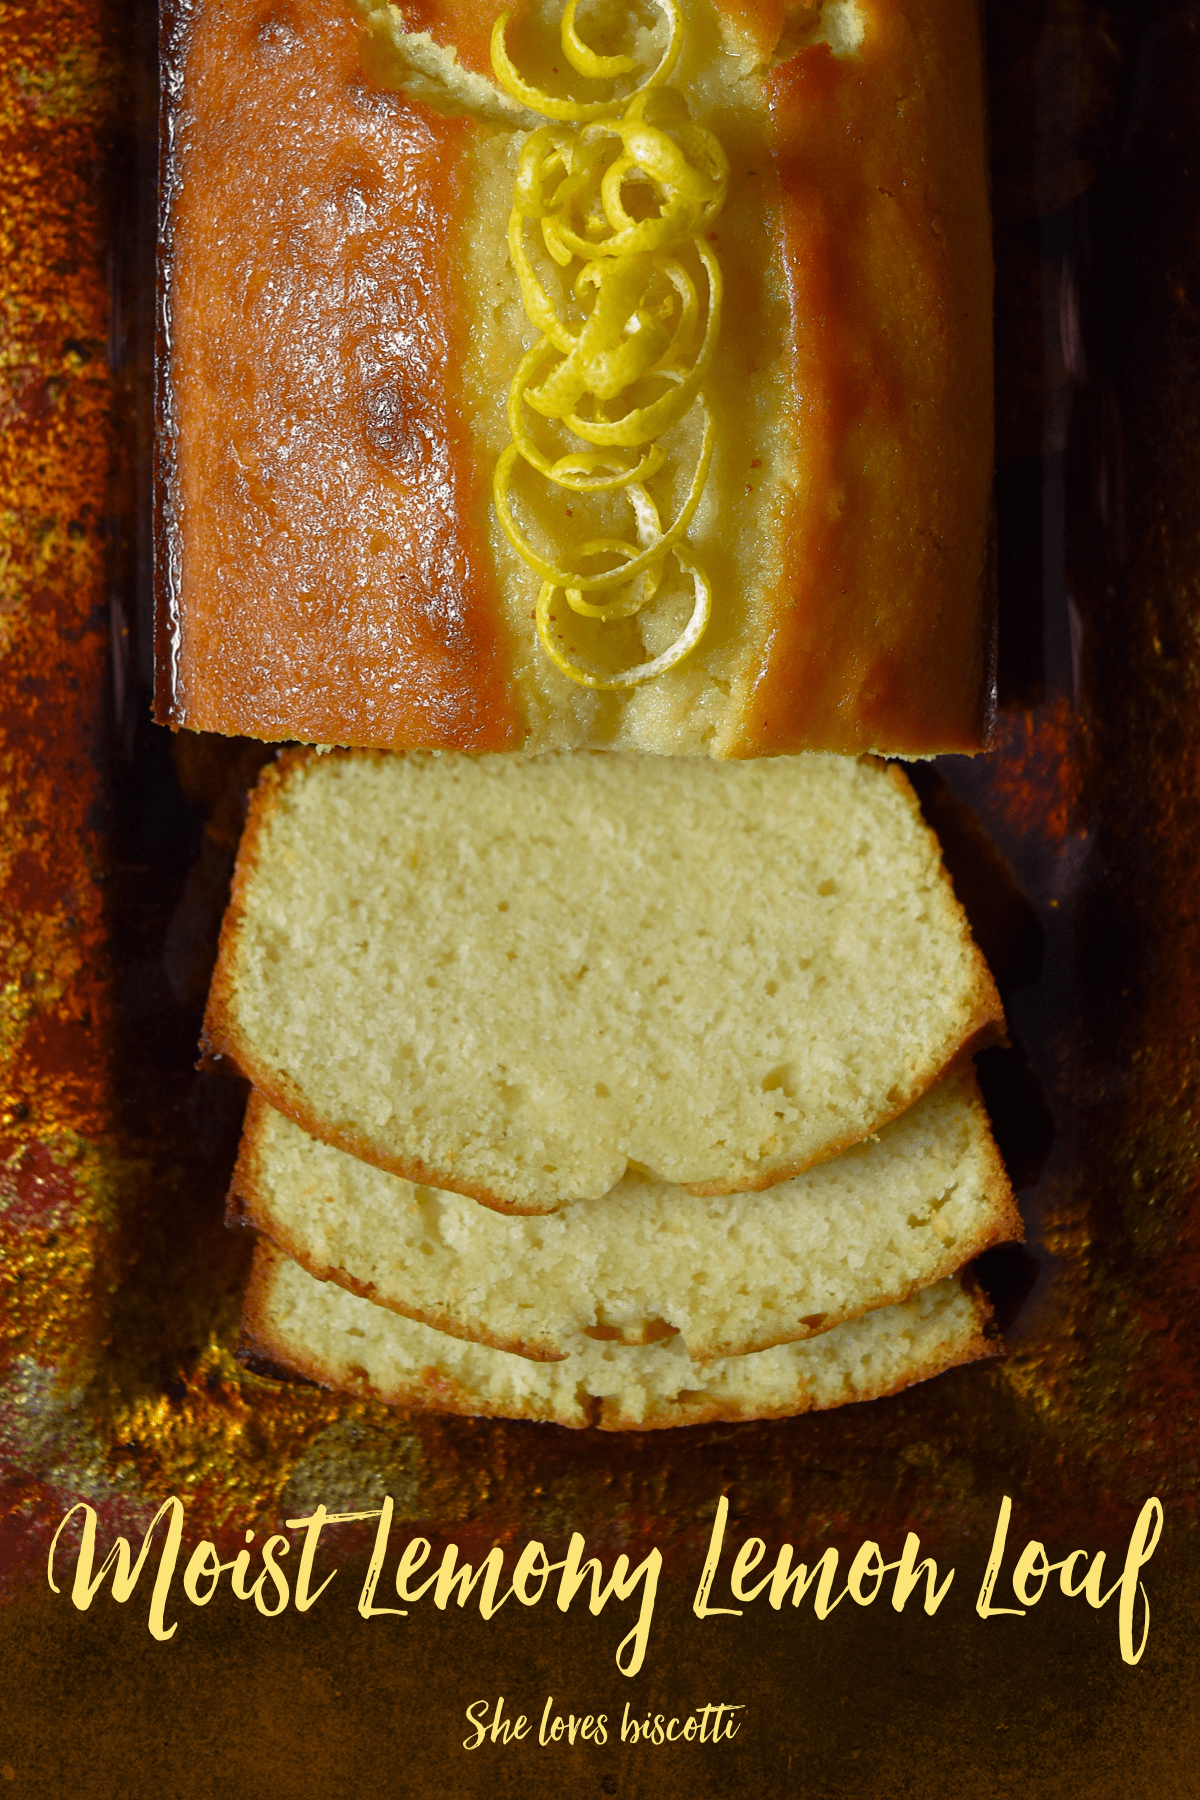 Extra Moist Lemony Lemon Loaf: This will quickly become your go to recipe for lemon loaf! #shelovesbiscotti #lemonloaf #betterthanstarbucks #lemoncake #lemon #lemoncake #dessert #lemondessert